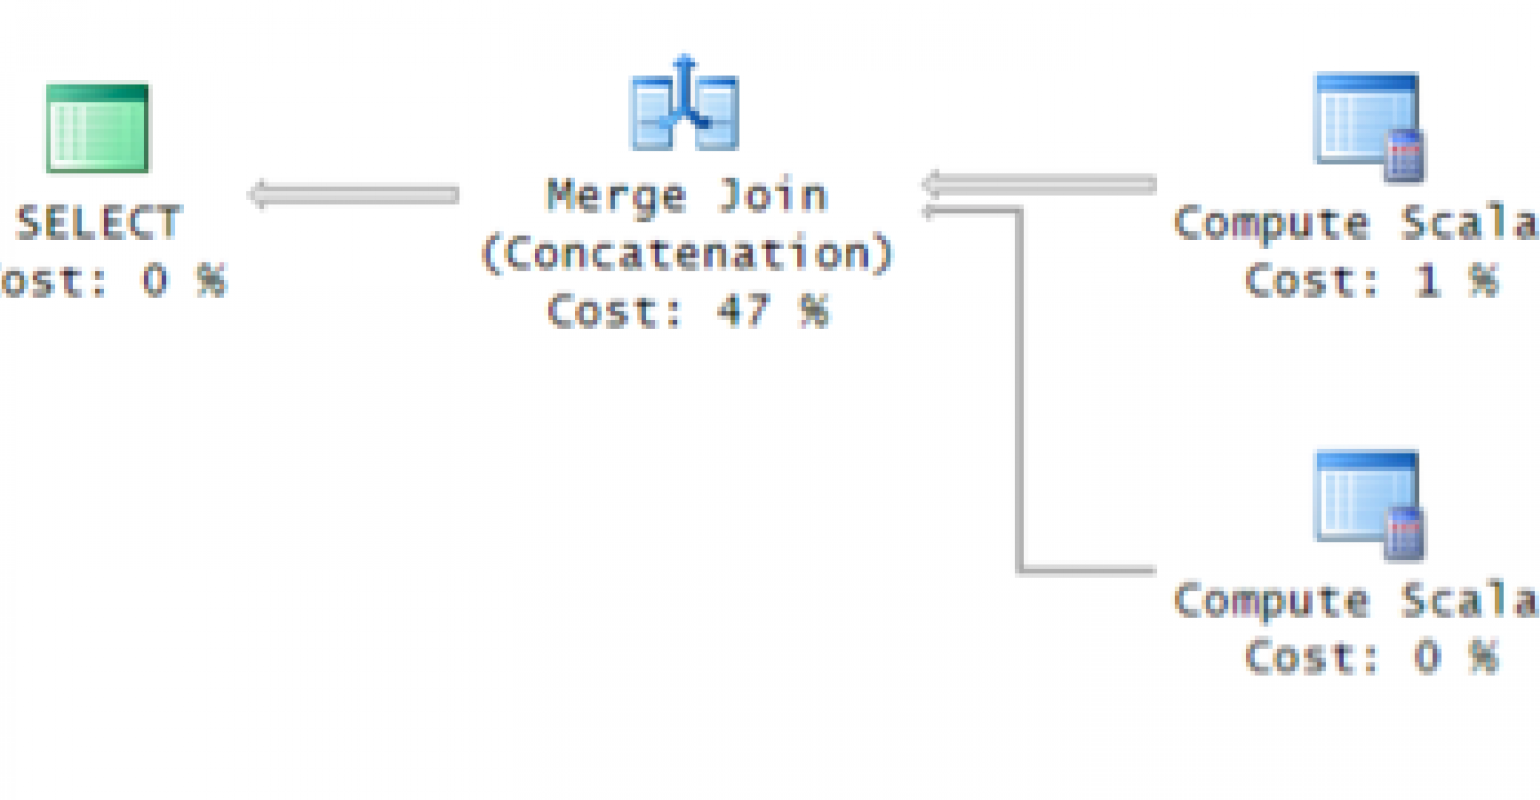 SQL Server: Avoiding a Sort with Merge Join Concatenation